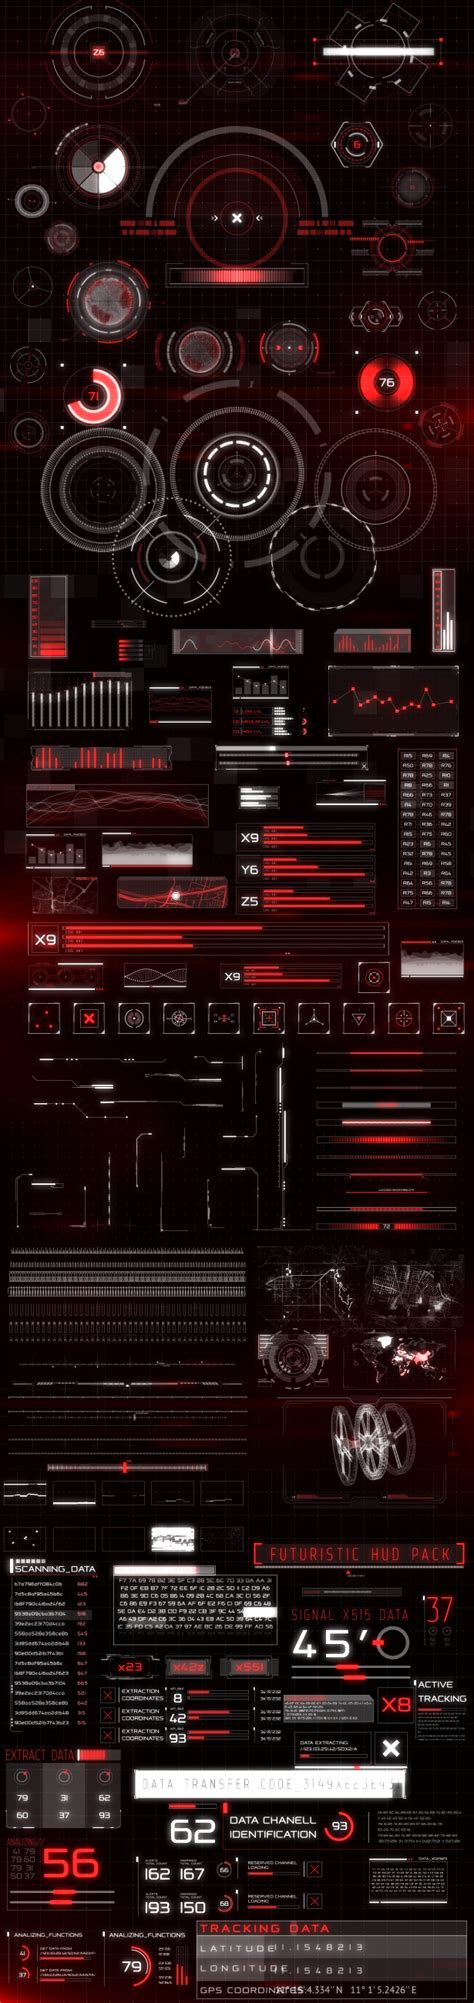 hud infographic technology envato videohive after